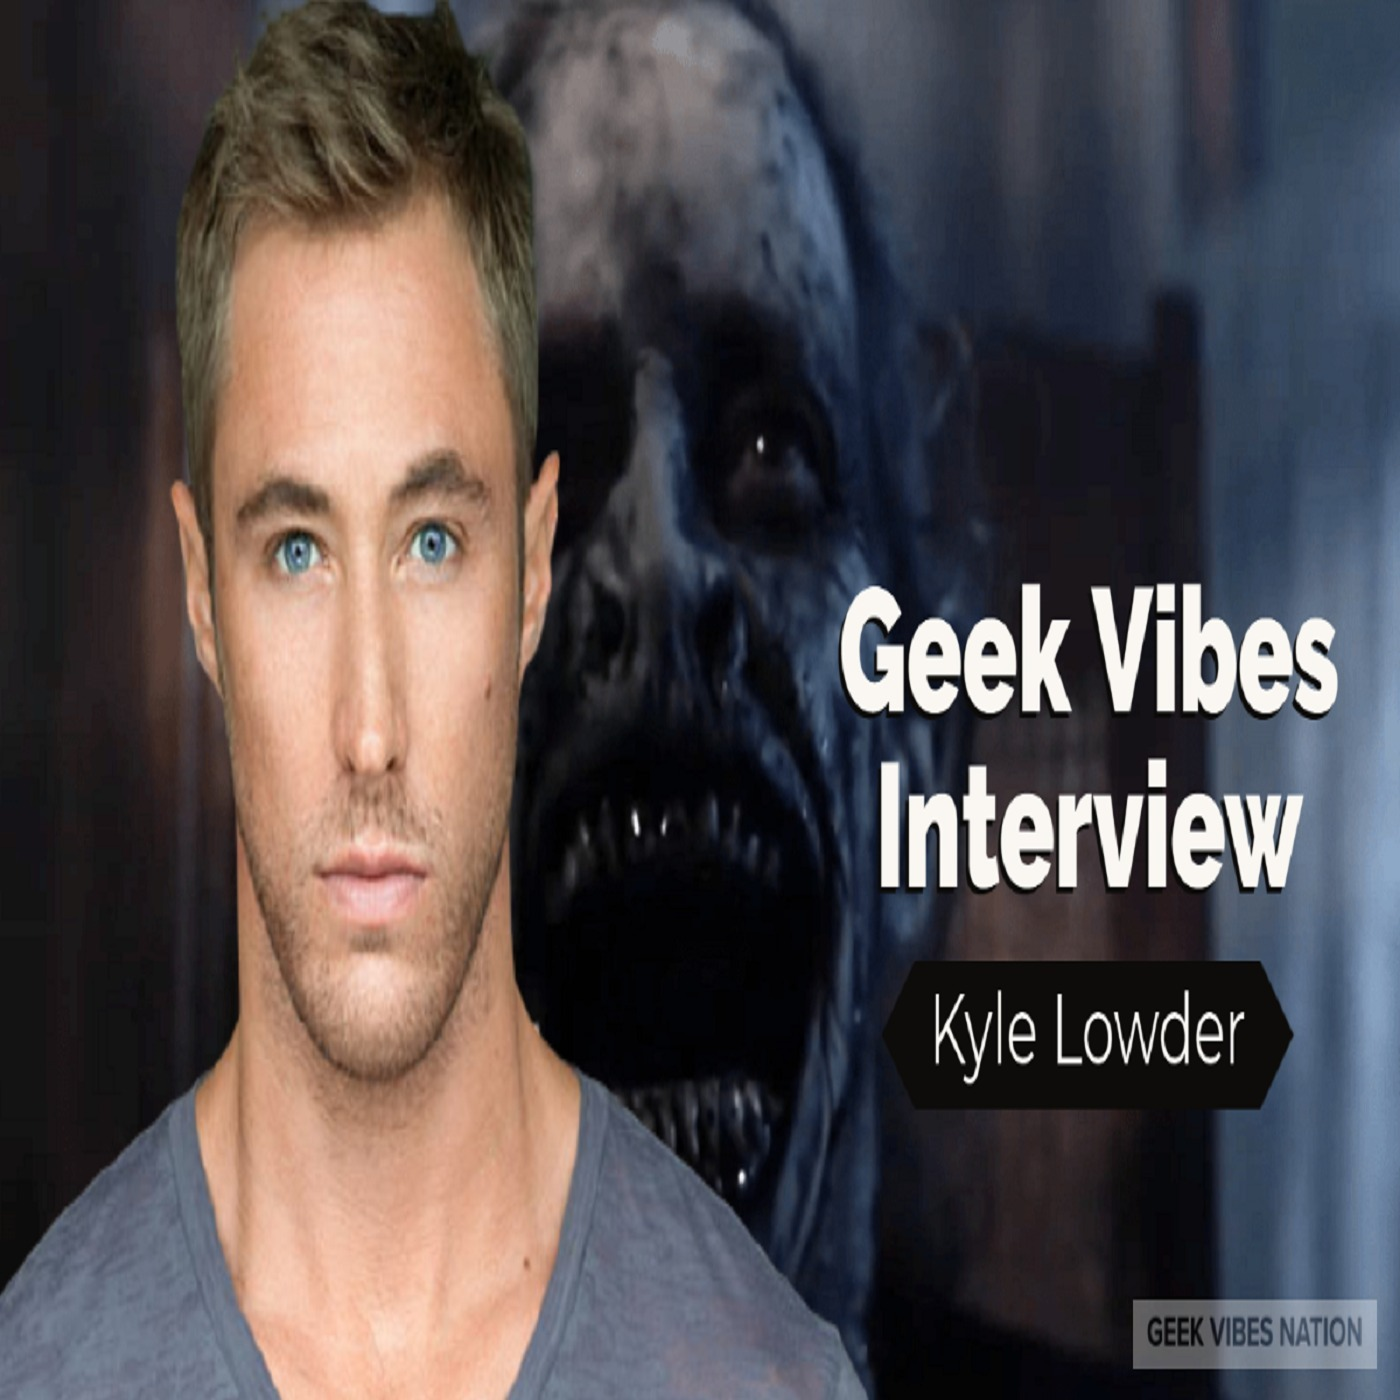 Geek Vibes Interview w/ Kyle Lowder